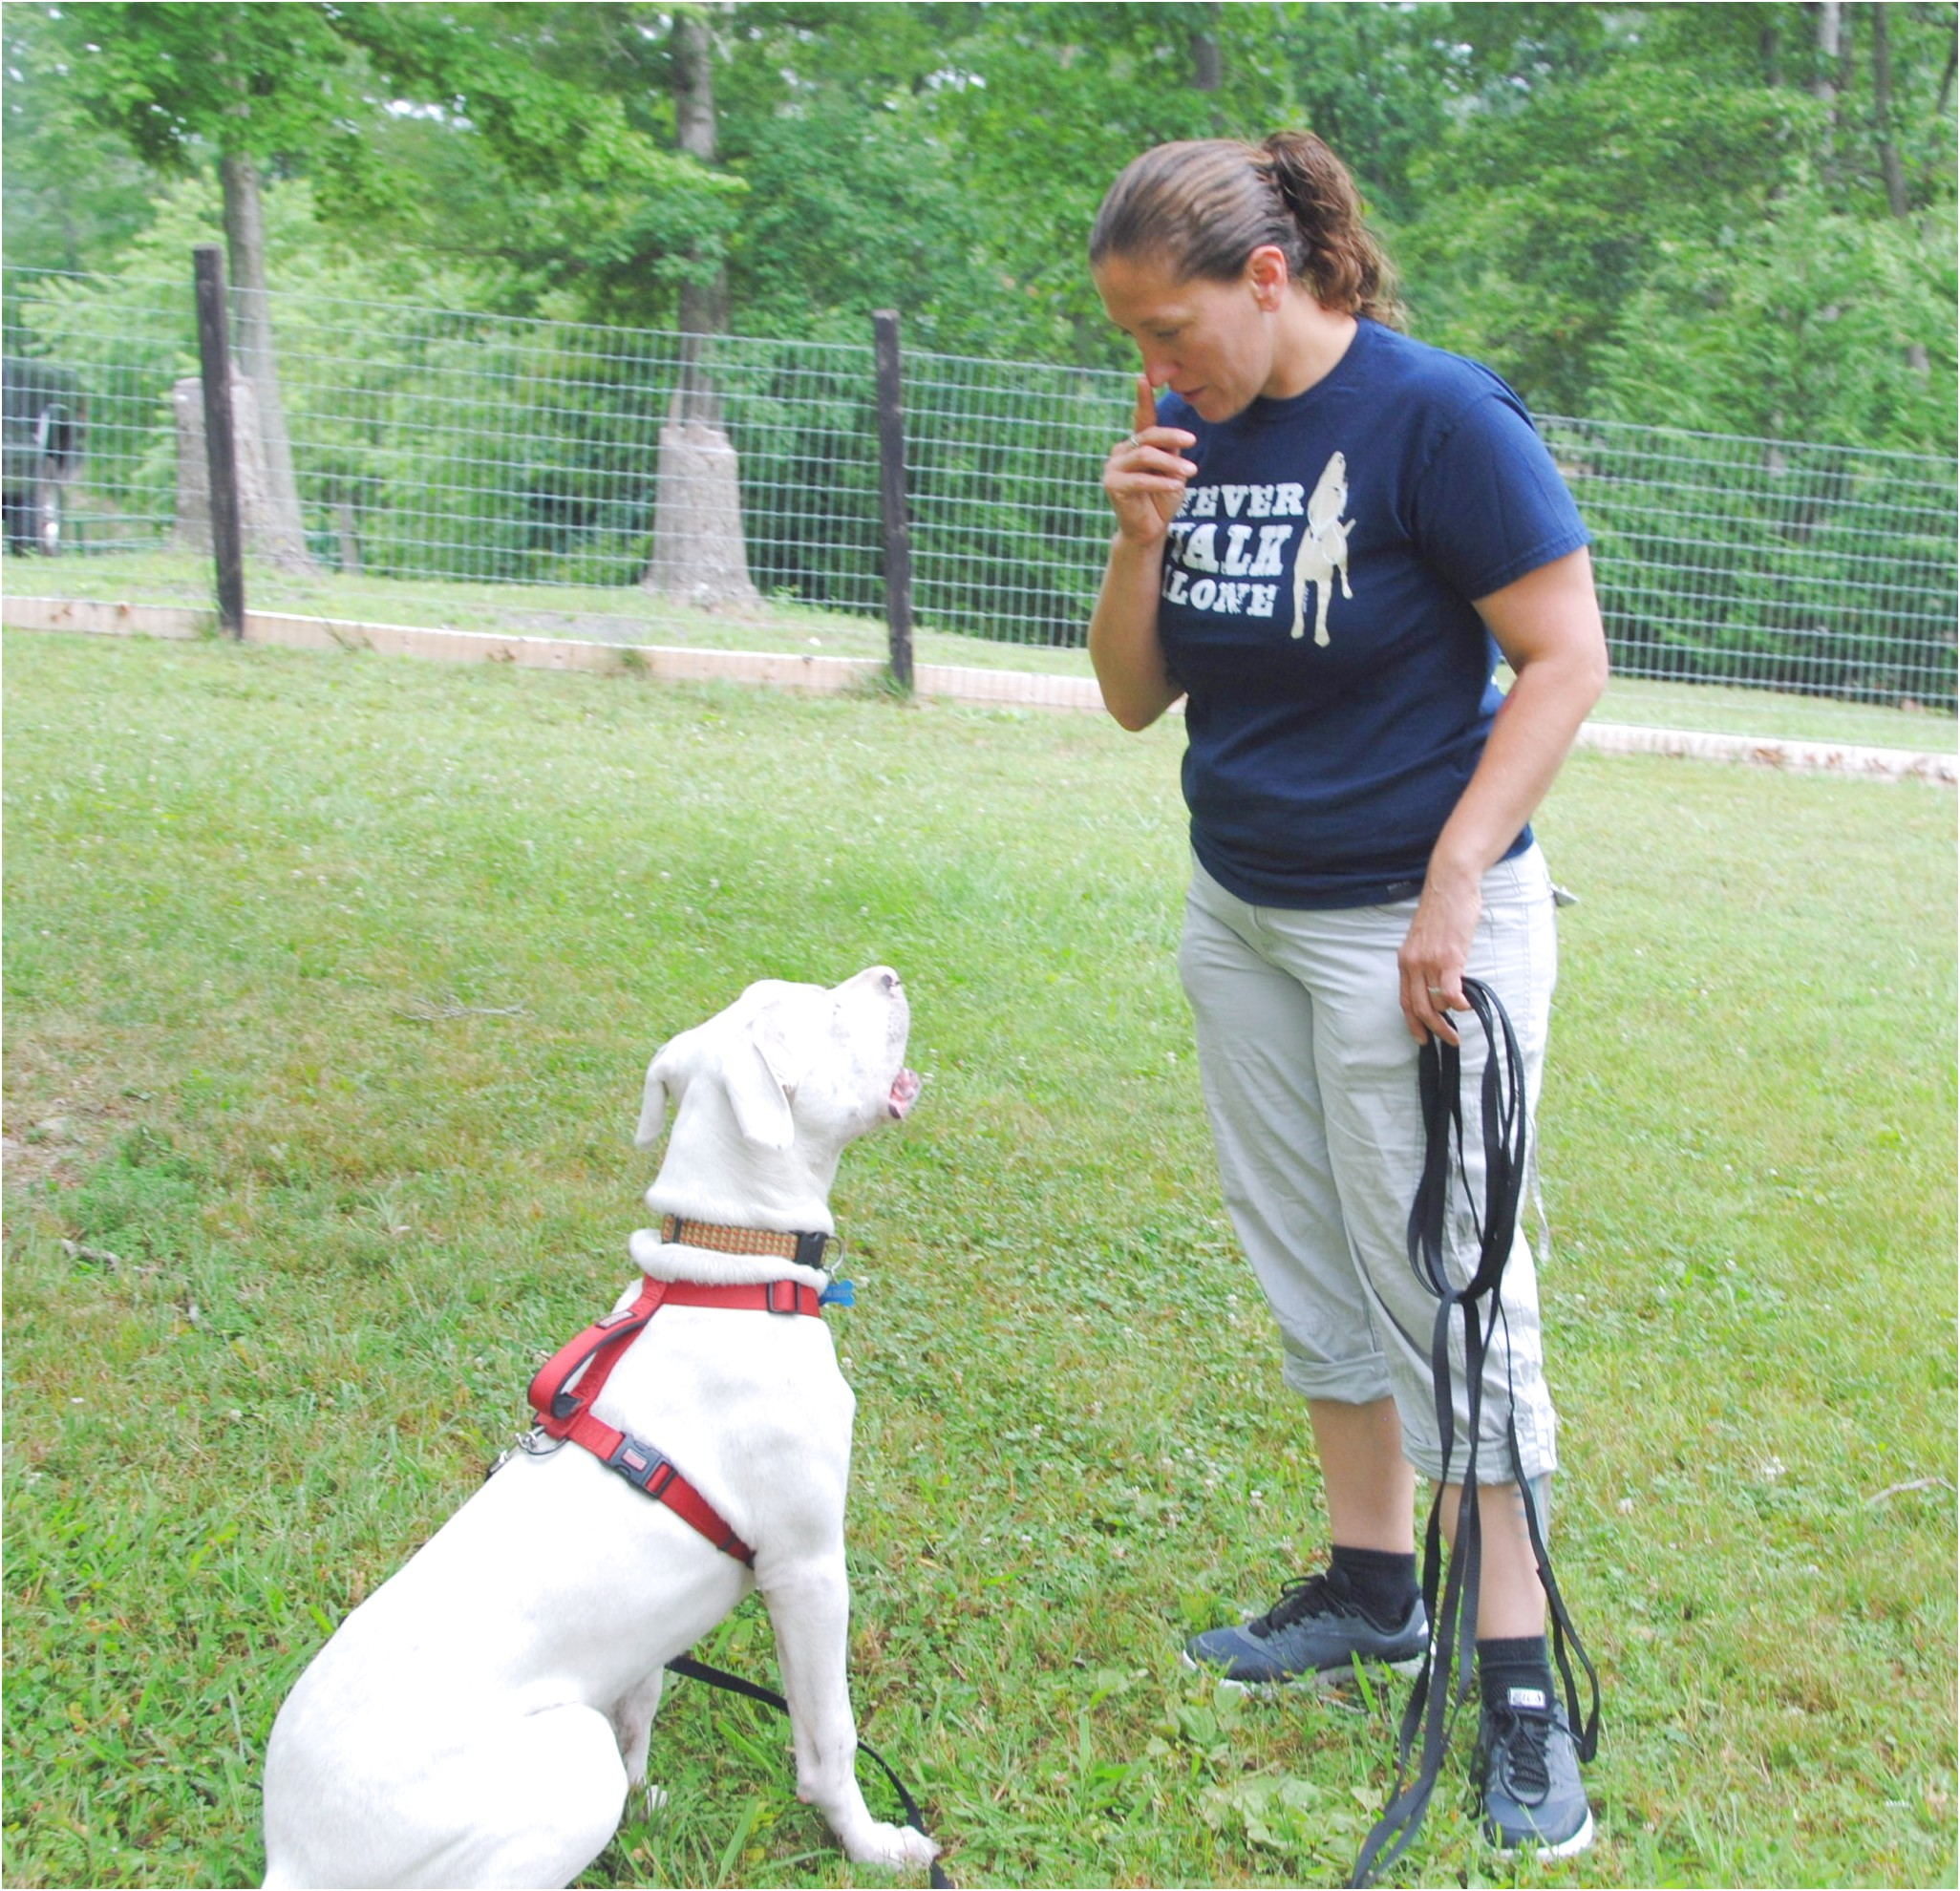 training a dog for a deaf person